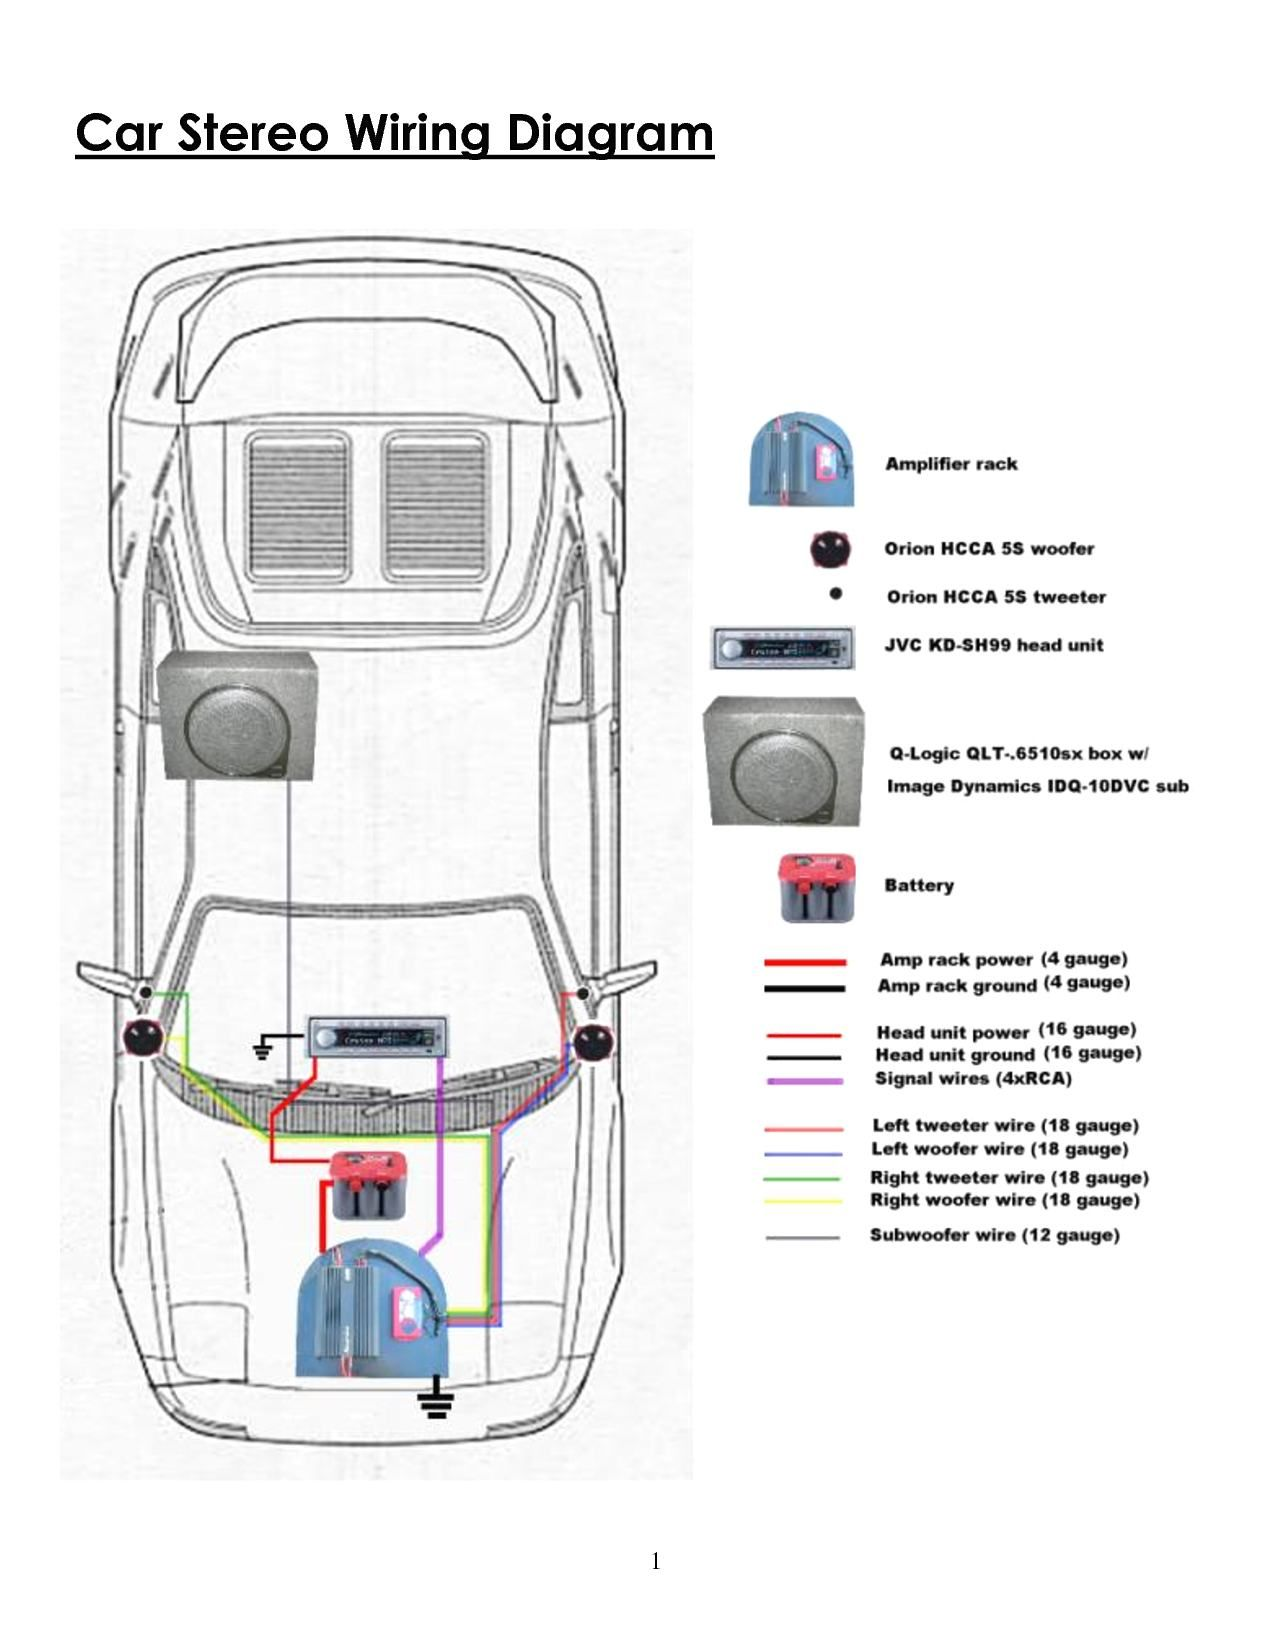 Car Stereo Help Wiring Diagram